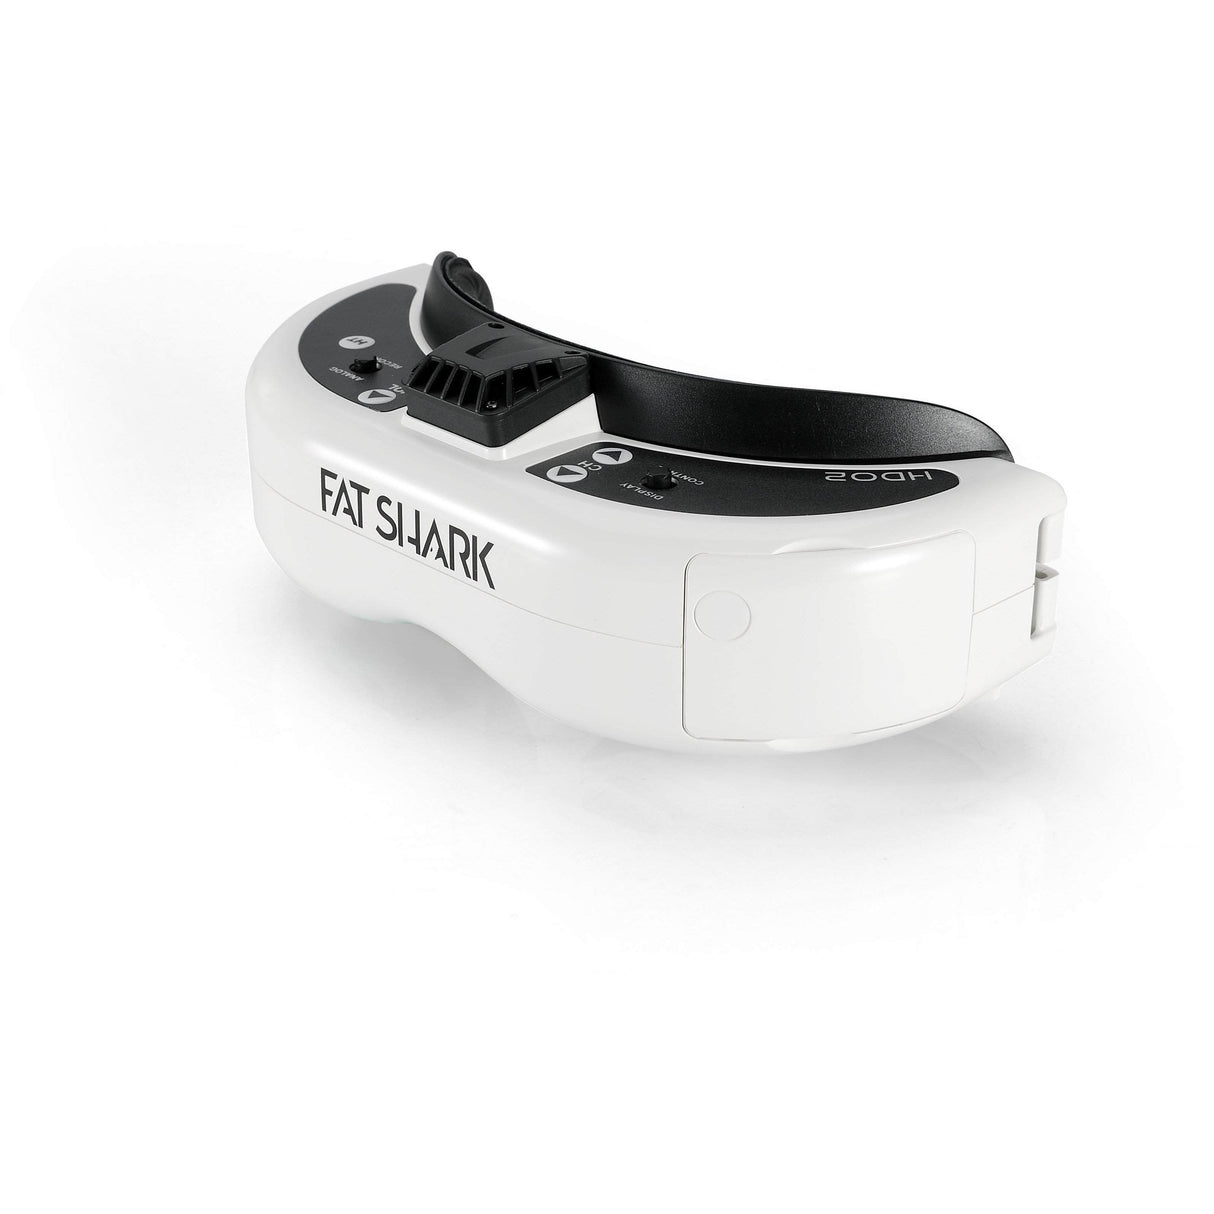 Fat Shark Dominator HDO2 OLED FPV Goggles - RaceDayQuads